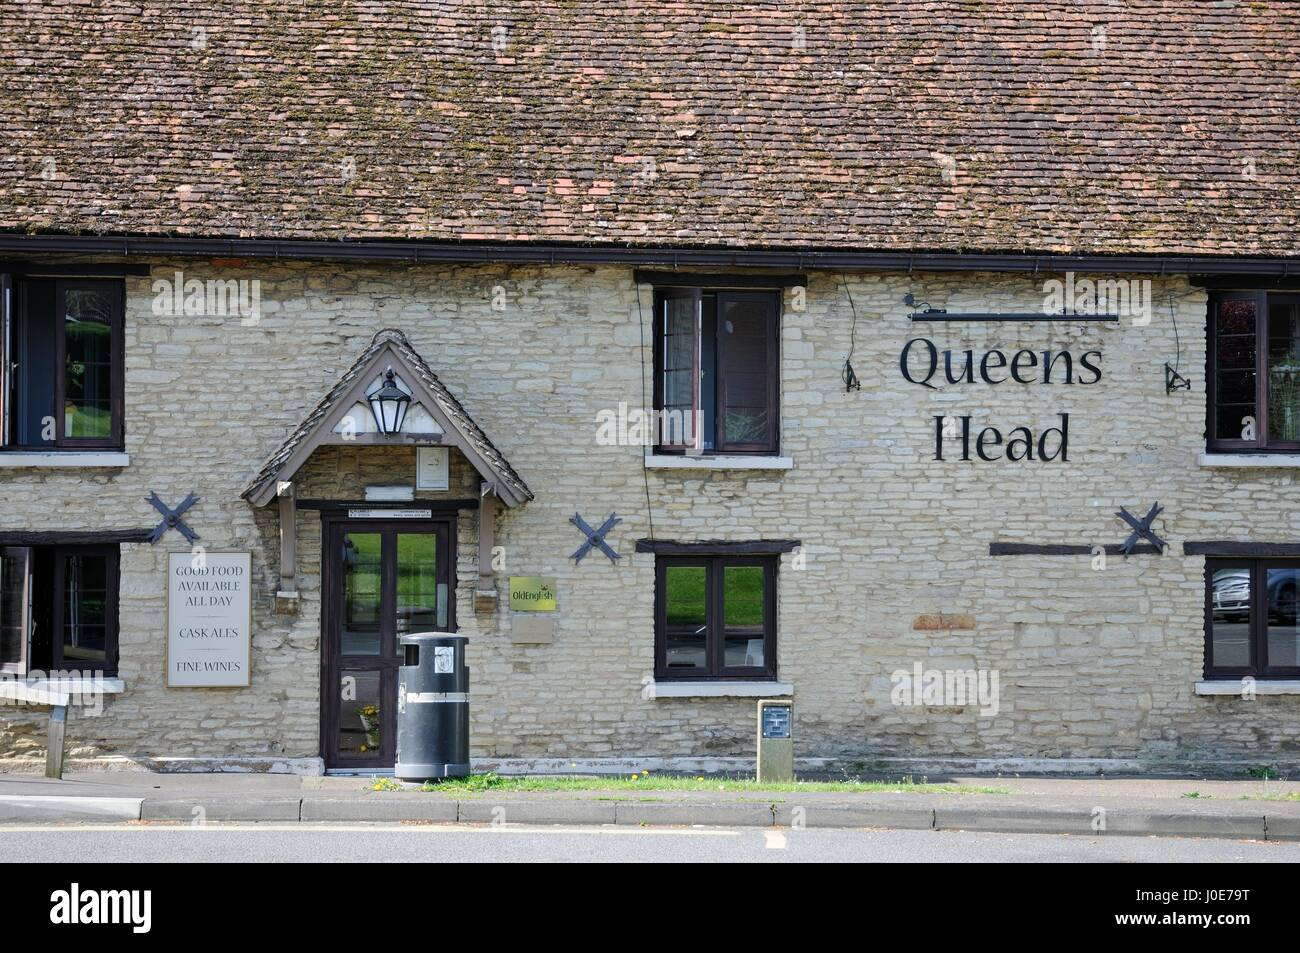 Queens Head, Milton Ernest, Bedfordshire - Stock Image